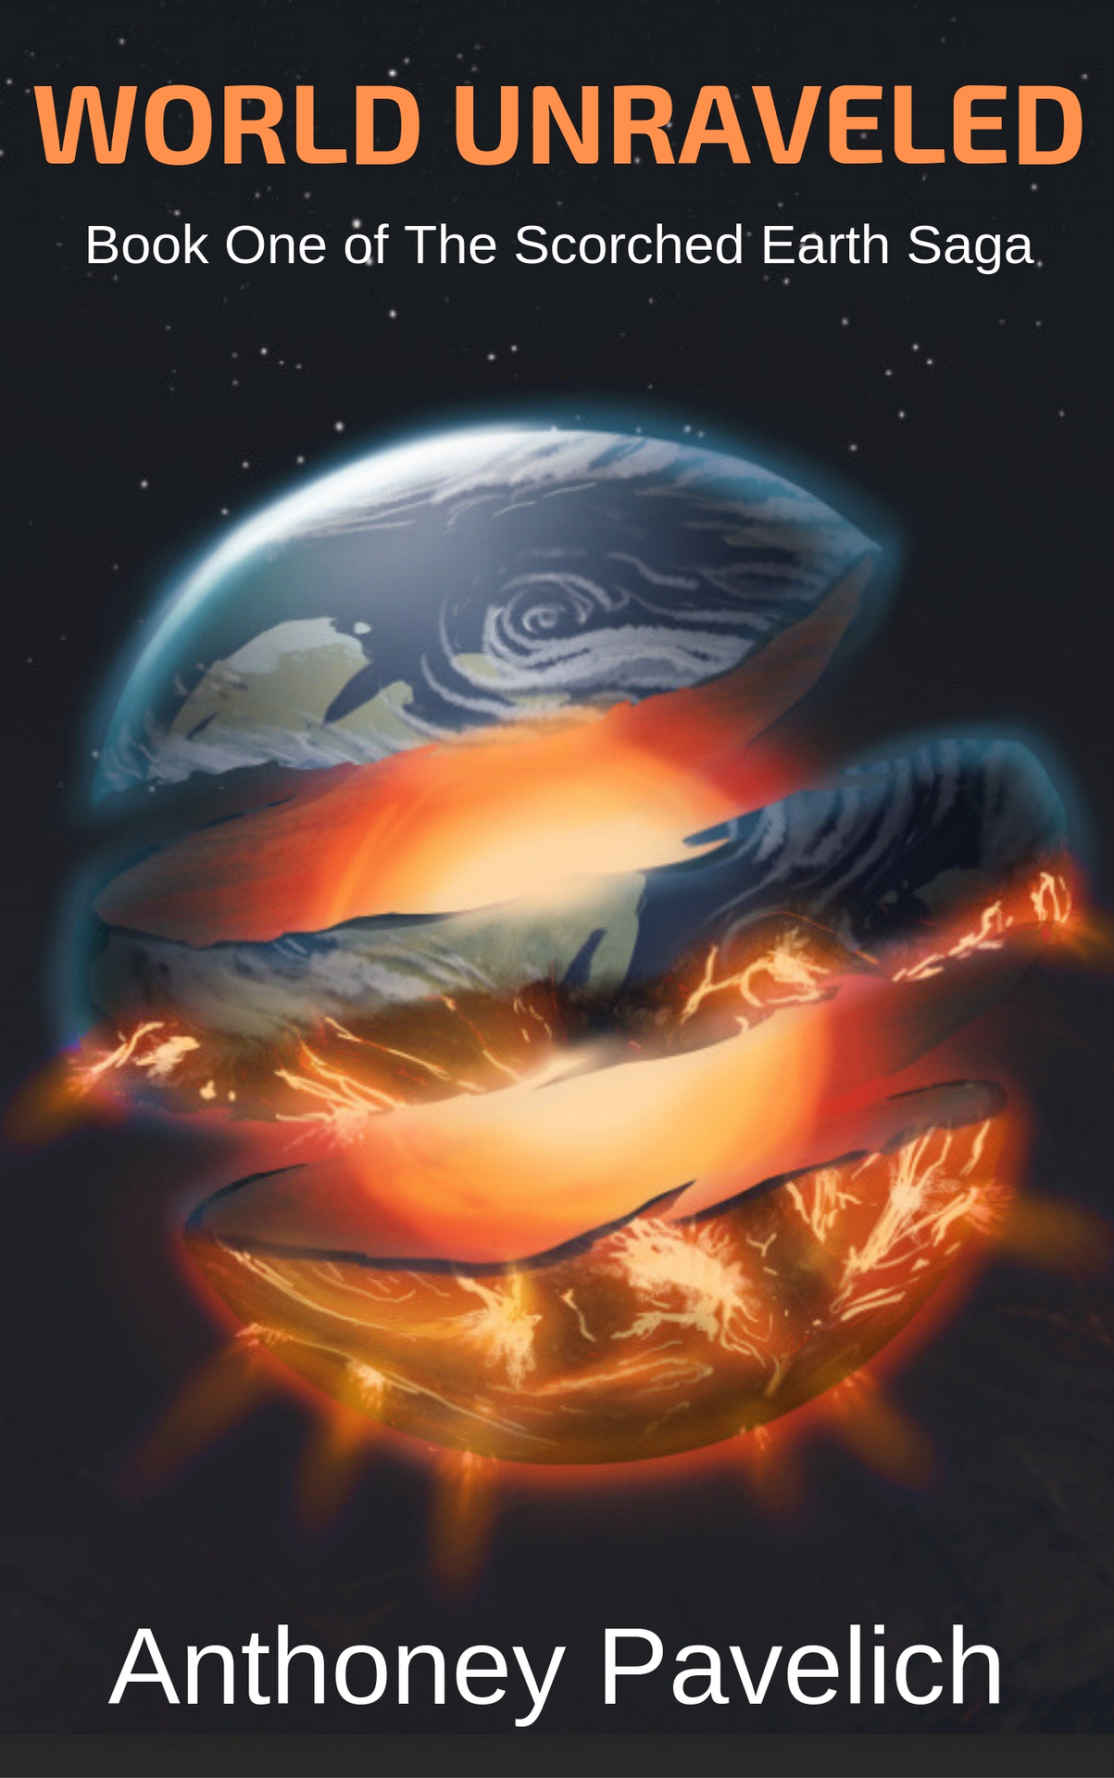 World Unraveled: Book One of the Scorched Earth Saga By Anthoney Pavelich